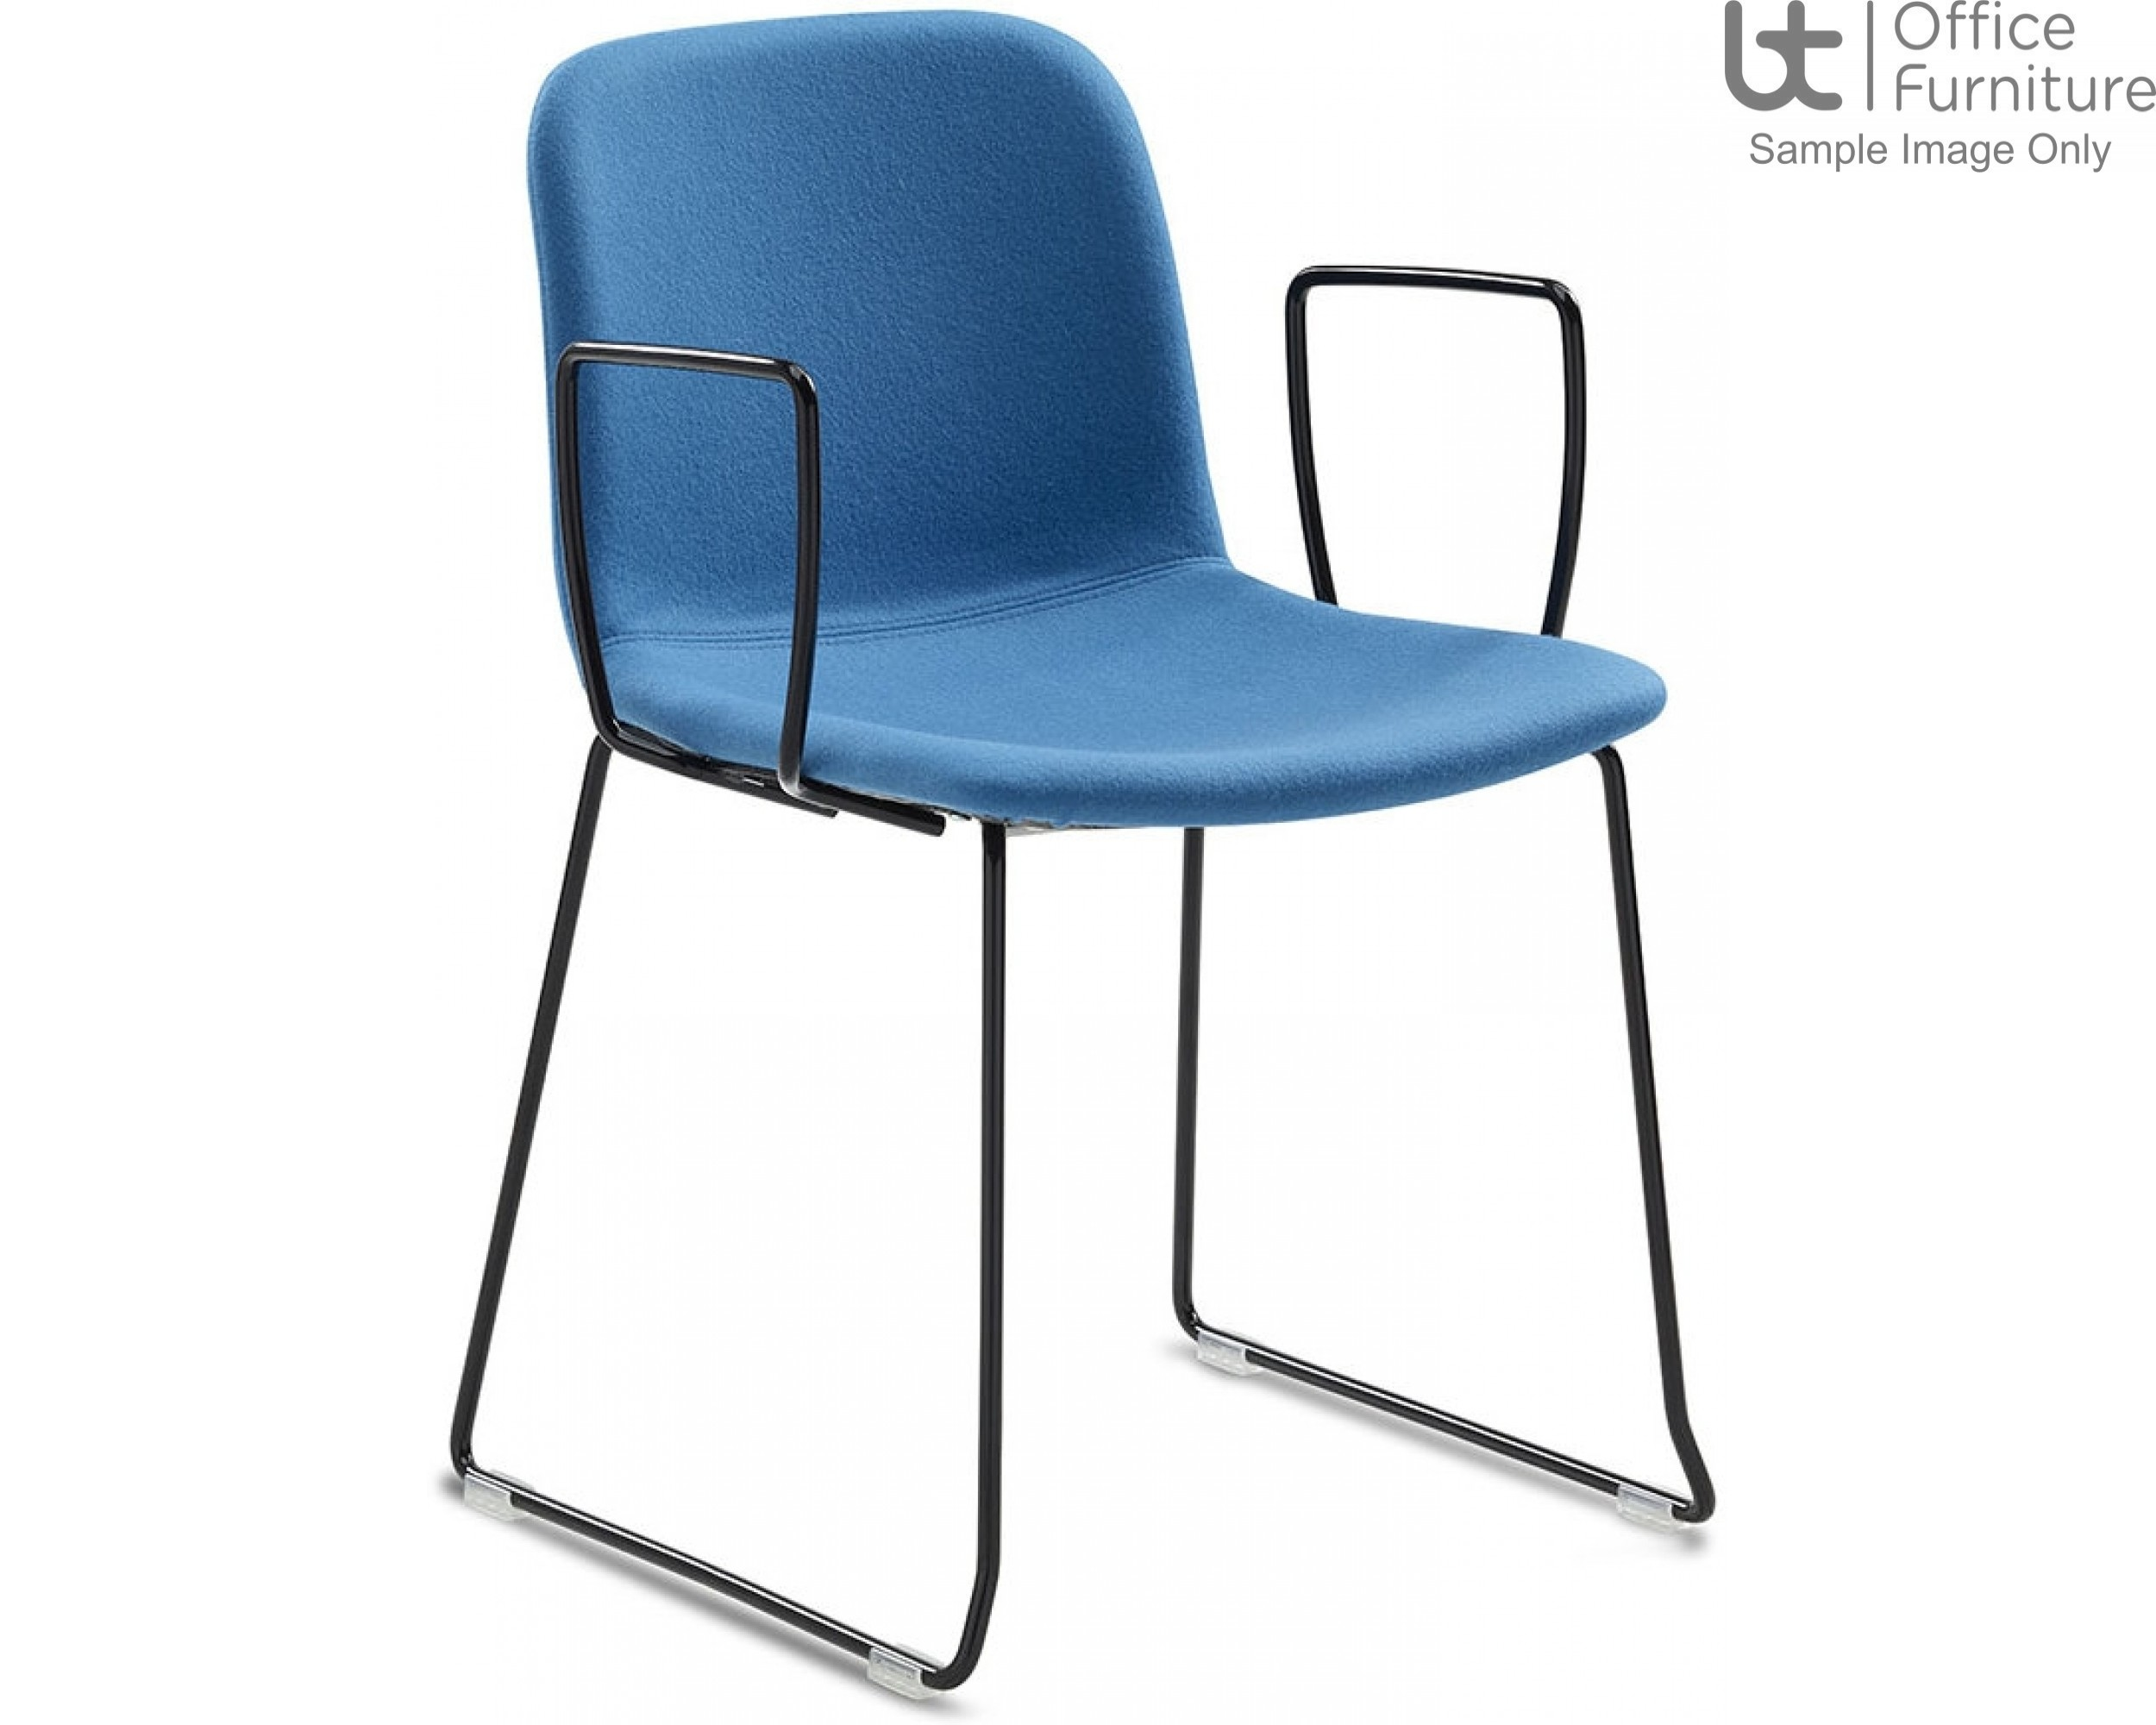 Verco Visitor / Conference Seating - Bethan Medium Back Sled Frame Chair with Arms